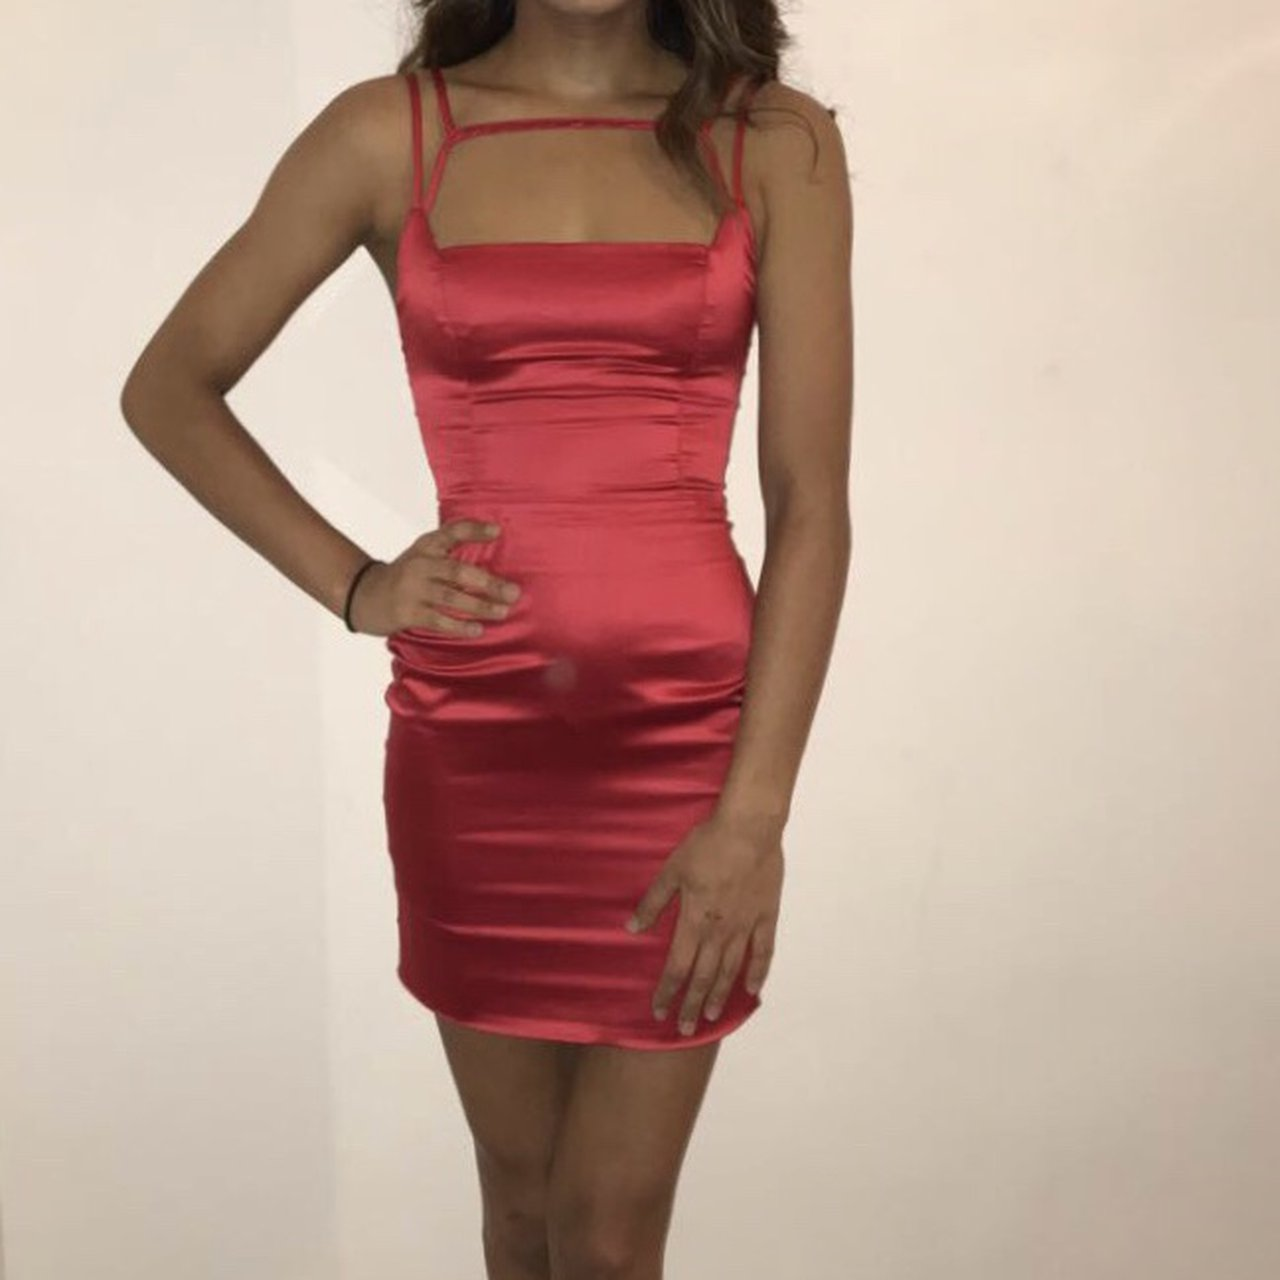 739ade1911 Oh Polly - Run The Show Cut Out Satin Mini Dress In Red. - - Depop